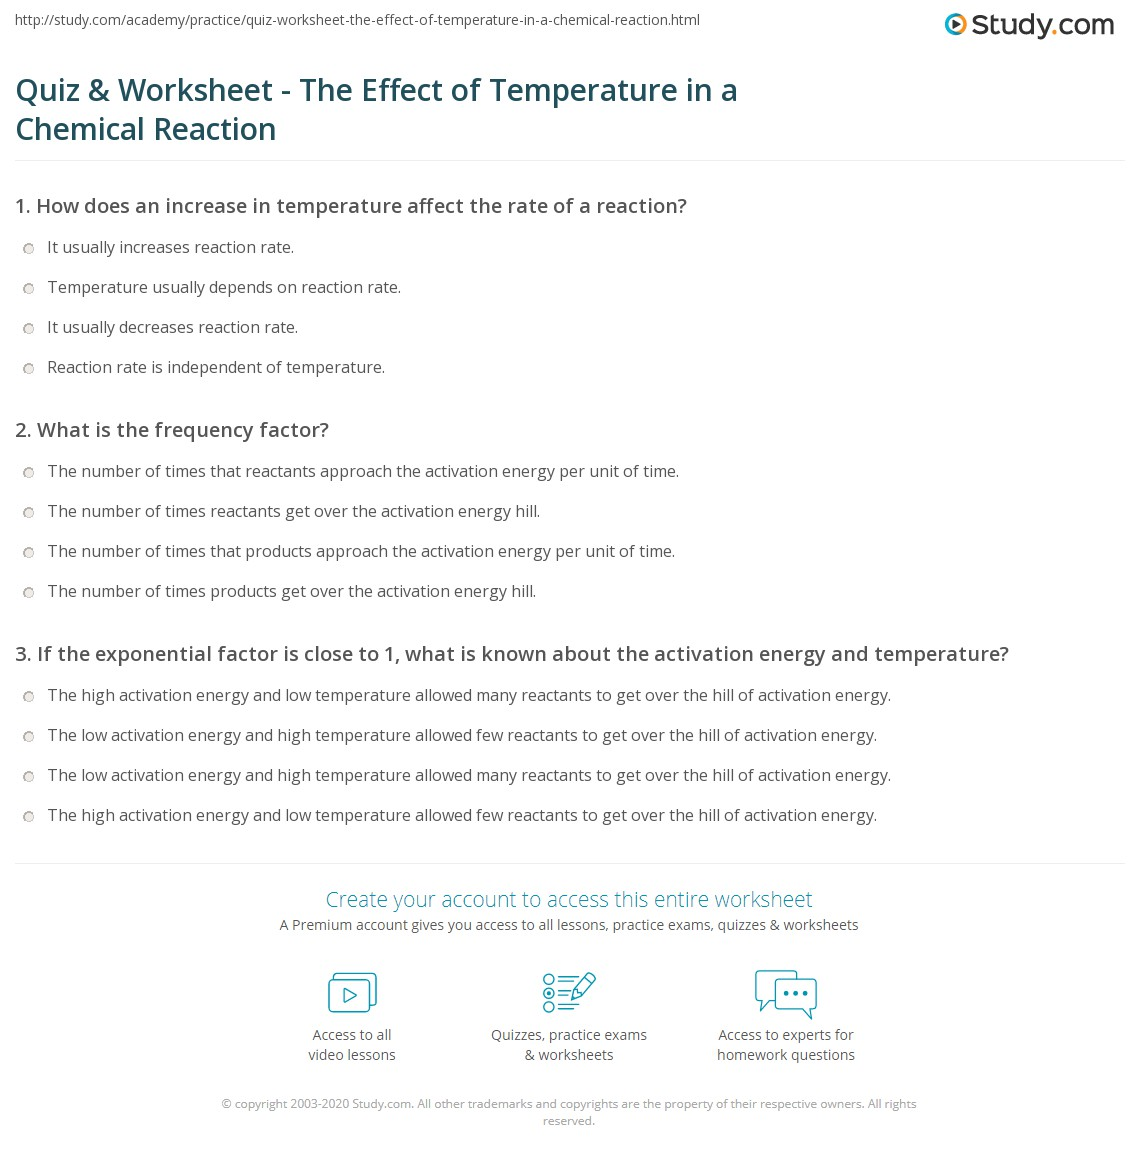 quiz worksheet the effect of temperature in a chemical reaction. Black Bedroom Furniture Sets. Home Design Ideas